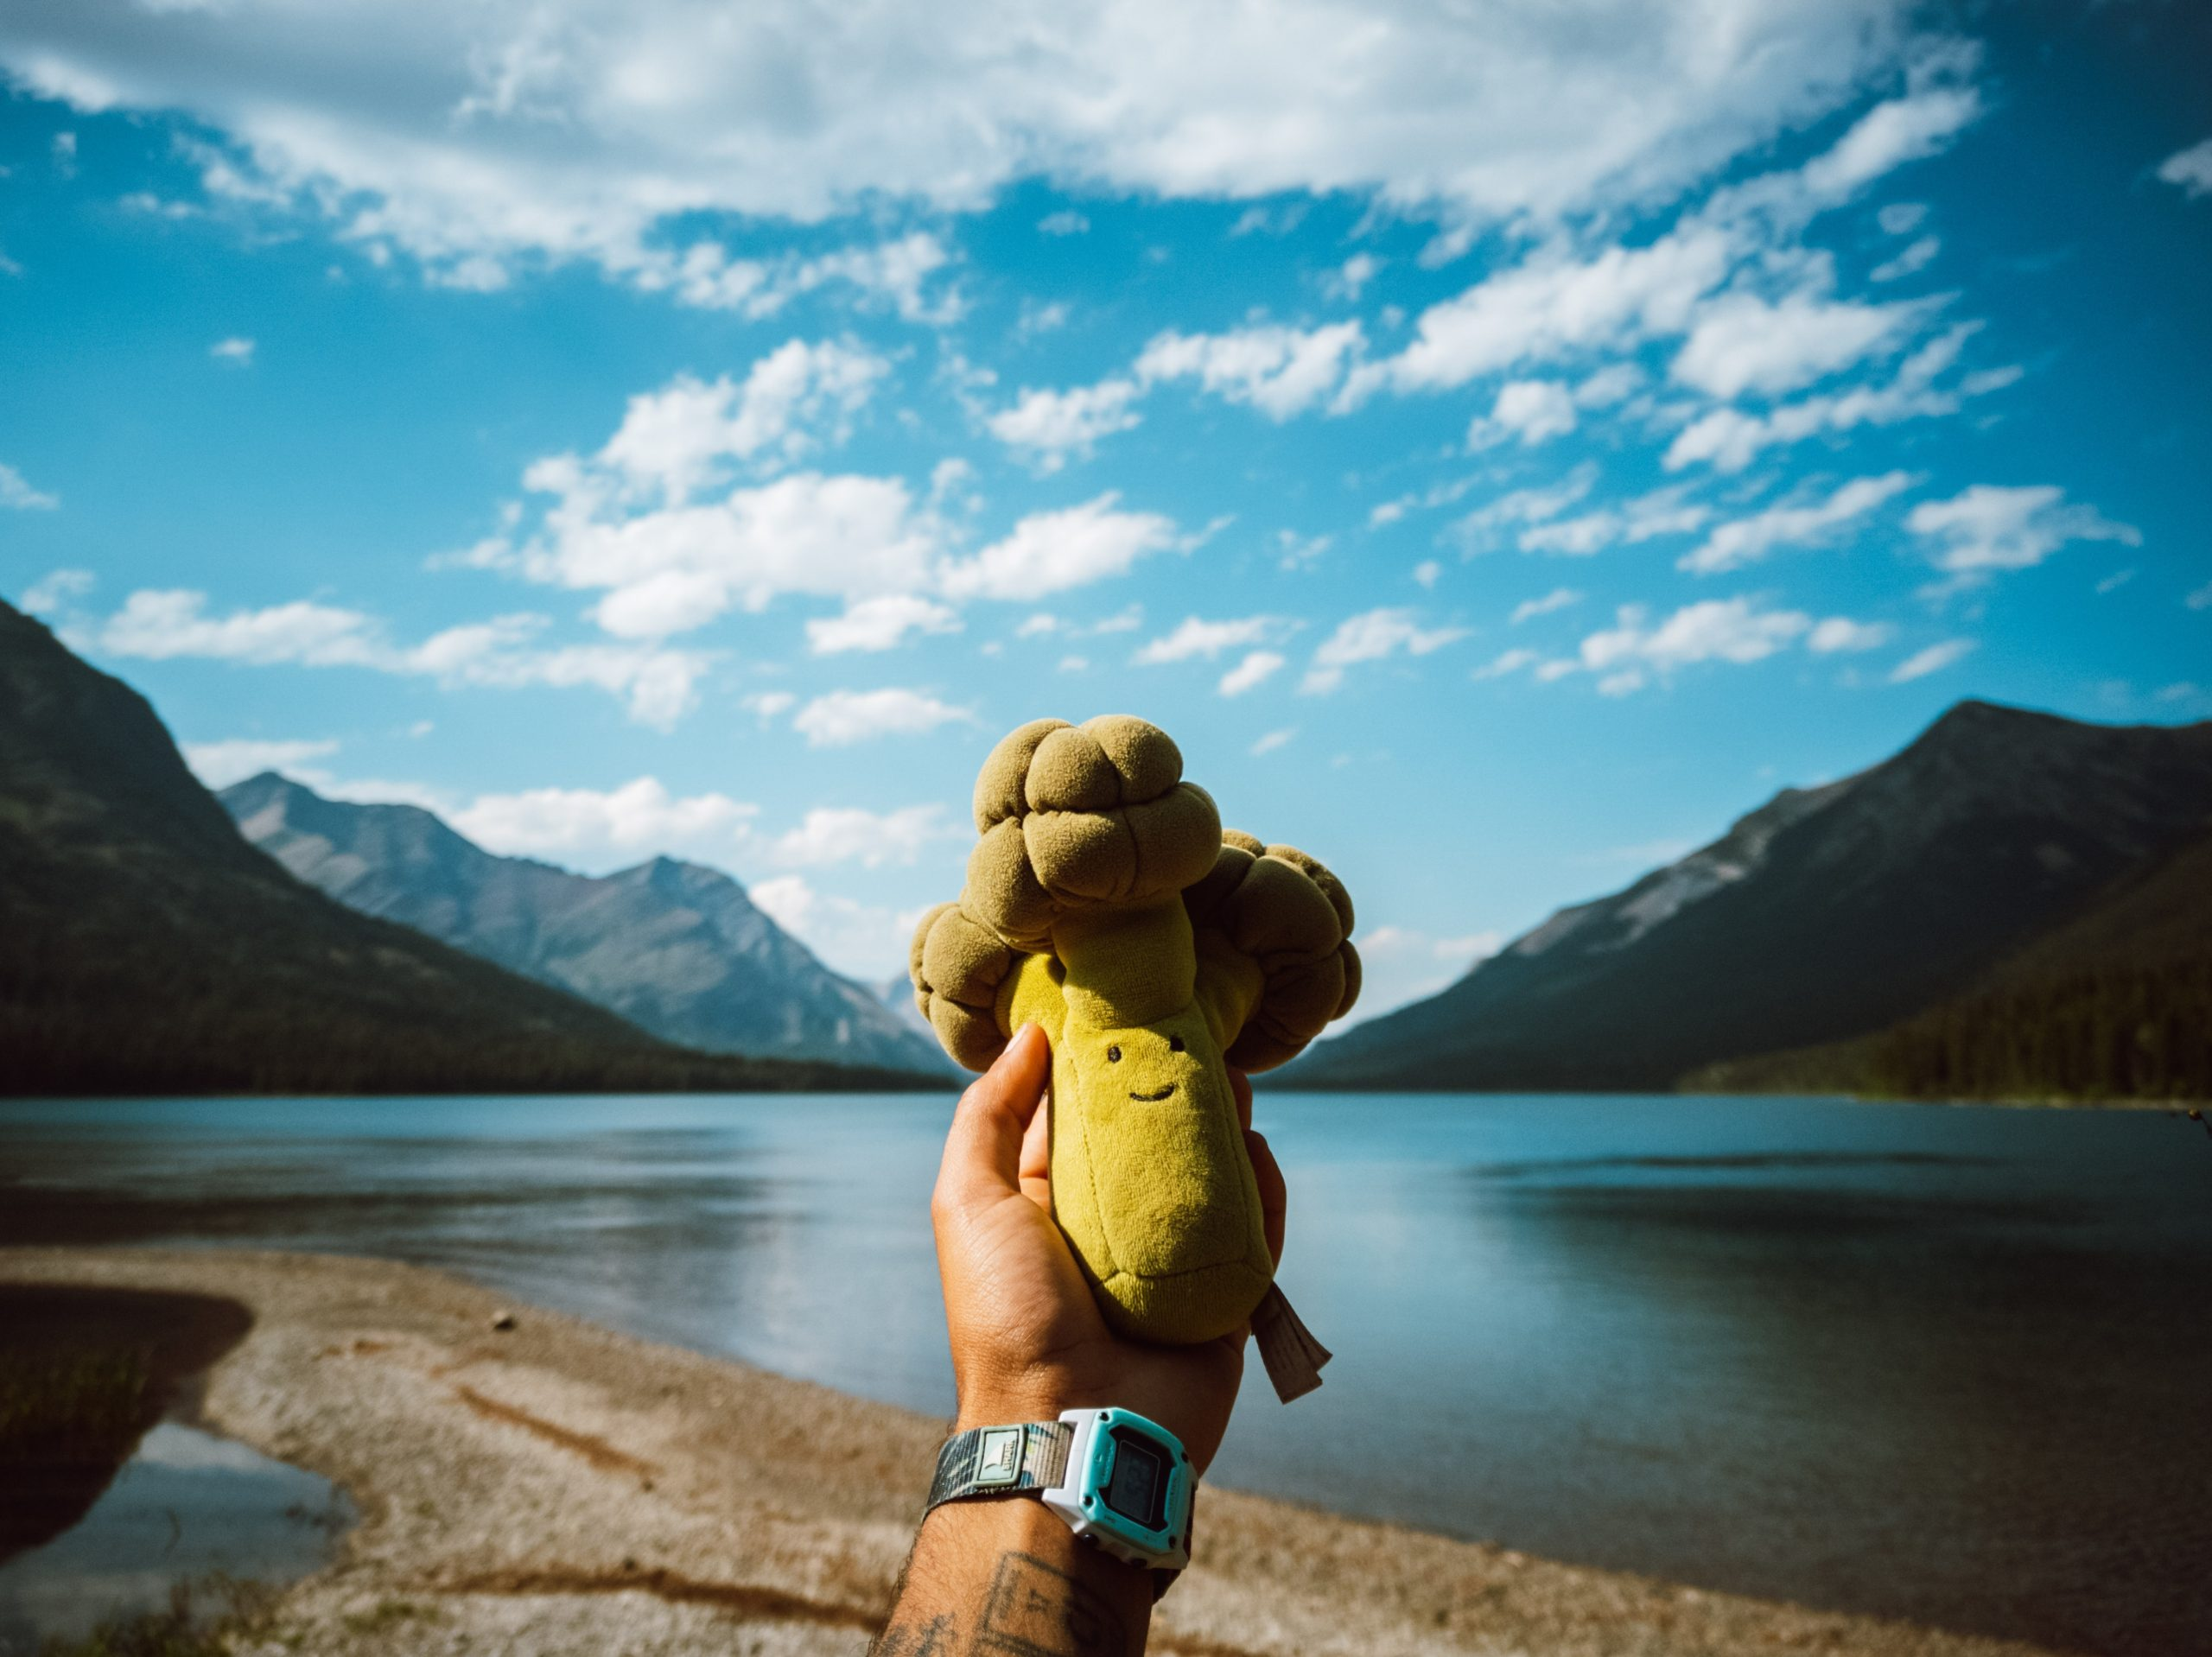 A hand is holding a stuffed broccoli plushie in front of a lake that is lined with mountains